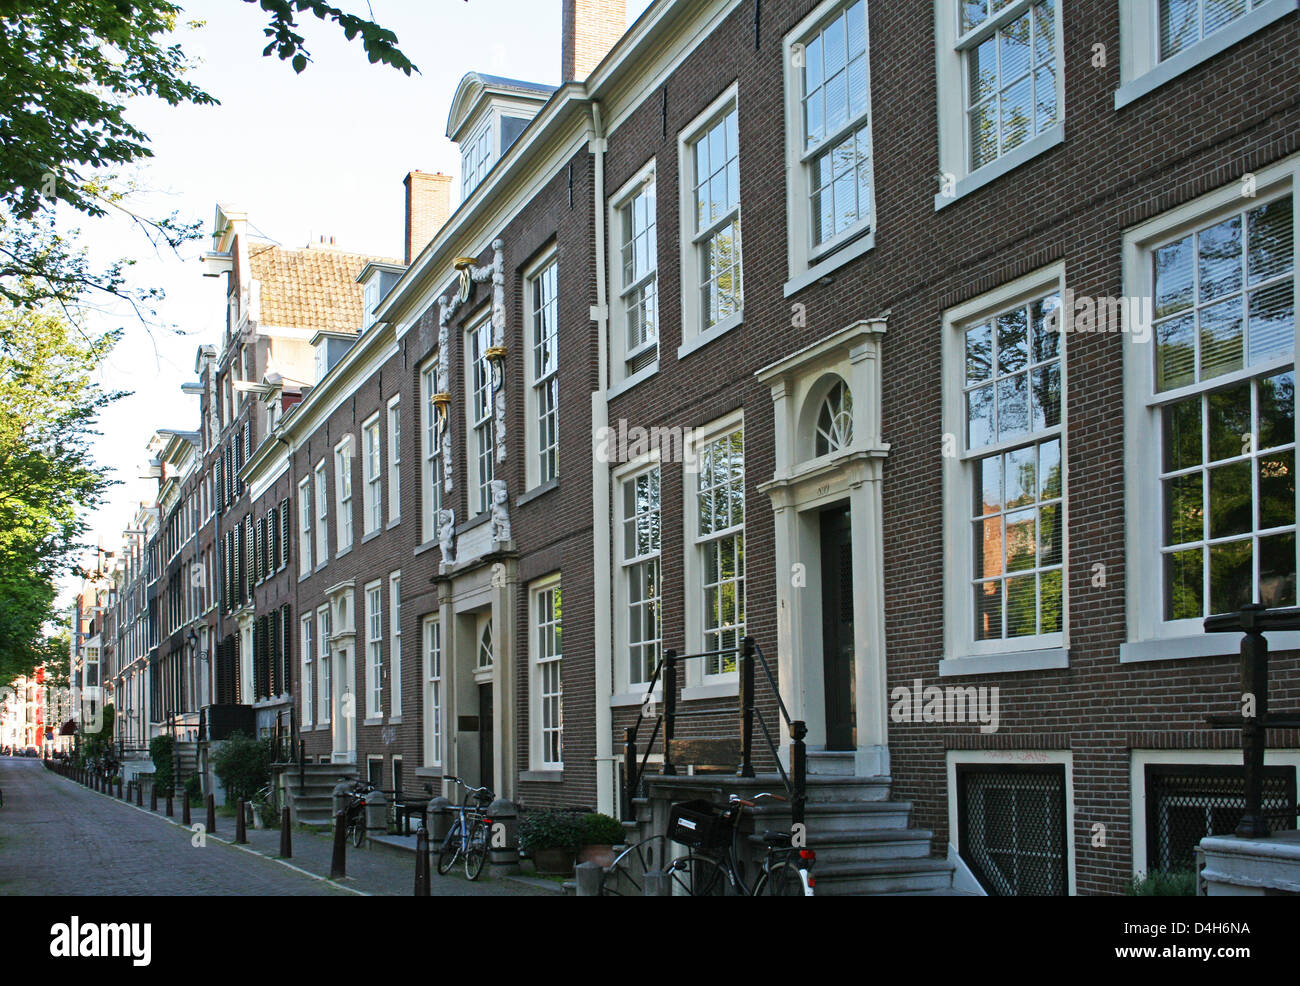 The Netherlands Holland Amsterdam Prinsengracht 855-899 Hofje 1695 Canal District Cornice - Stock Image